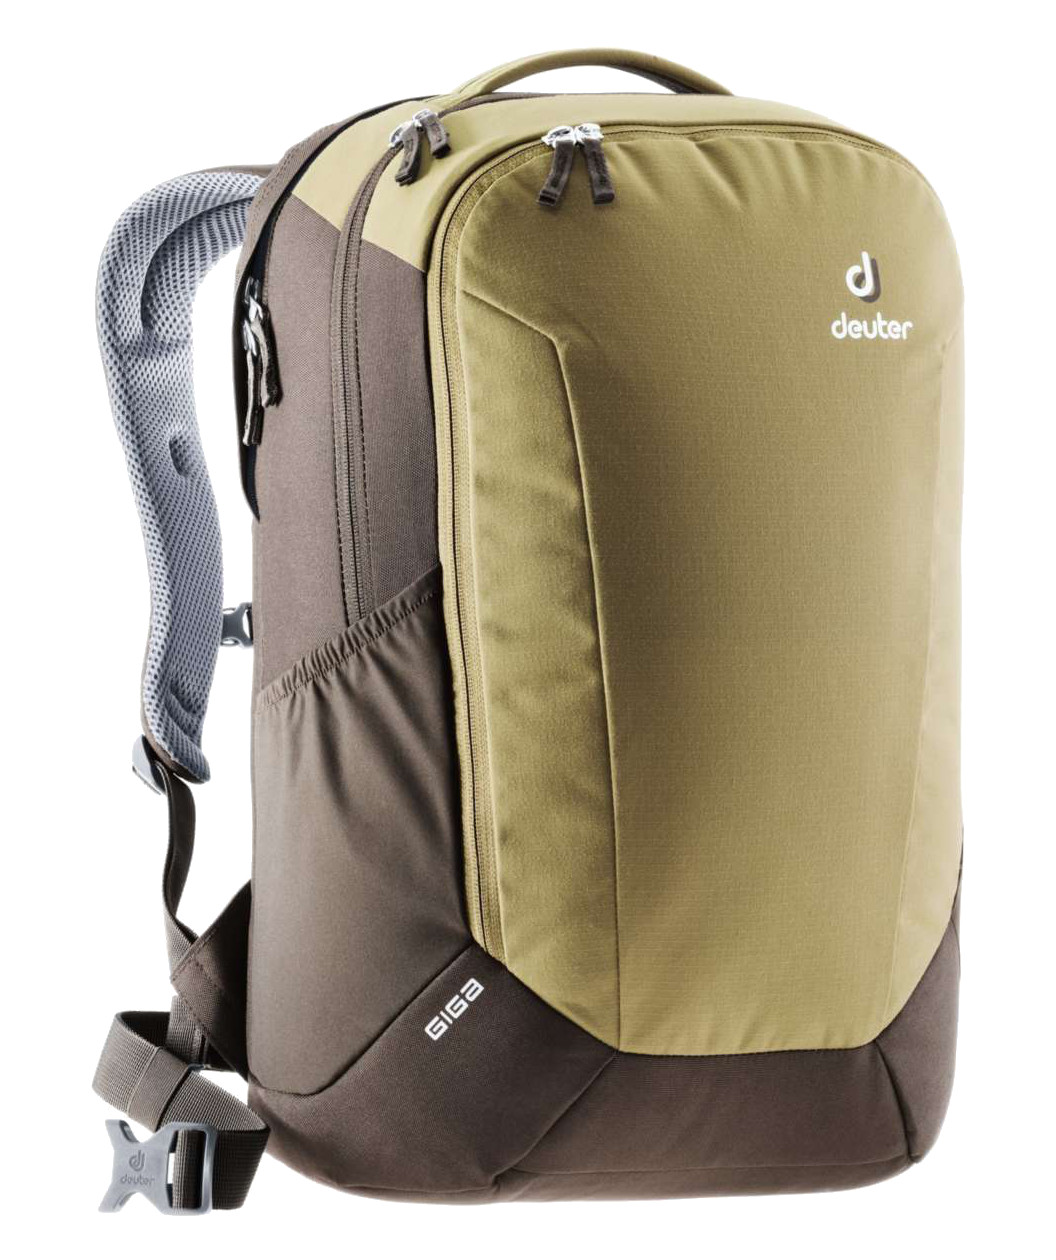 Deuter 'Giga' Rucksack mit Laptopfach 15,6' 980g 28l clay-coffee